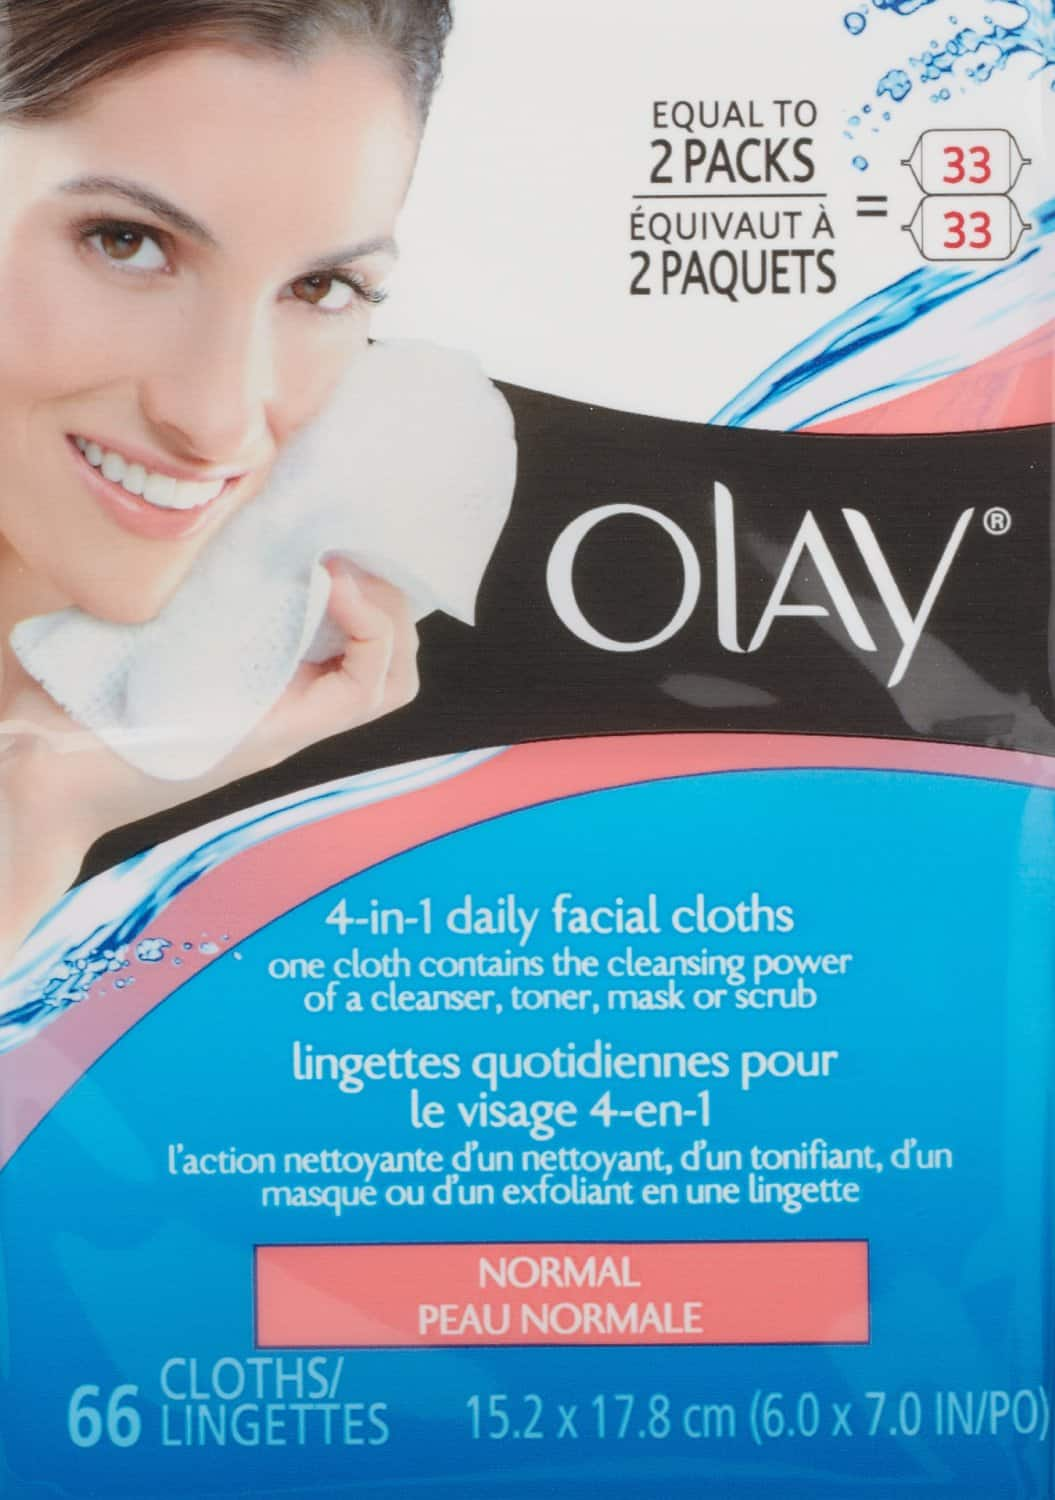 66-Count Olay 4-in-1 Daily Facial Cloths (Normal Skin)  $5